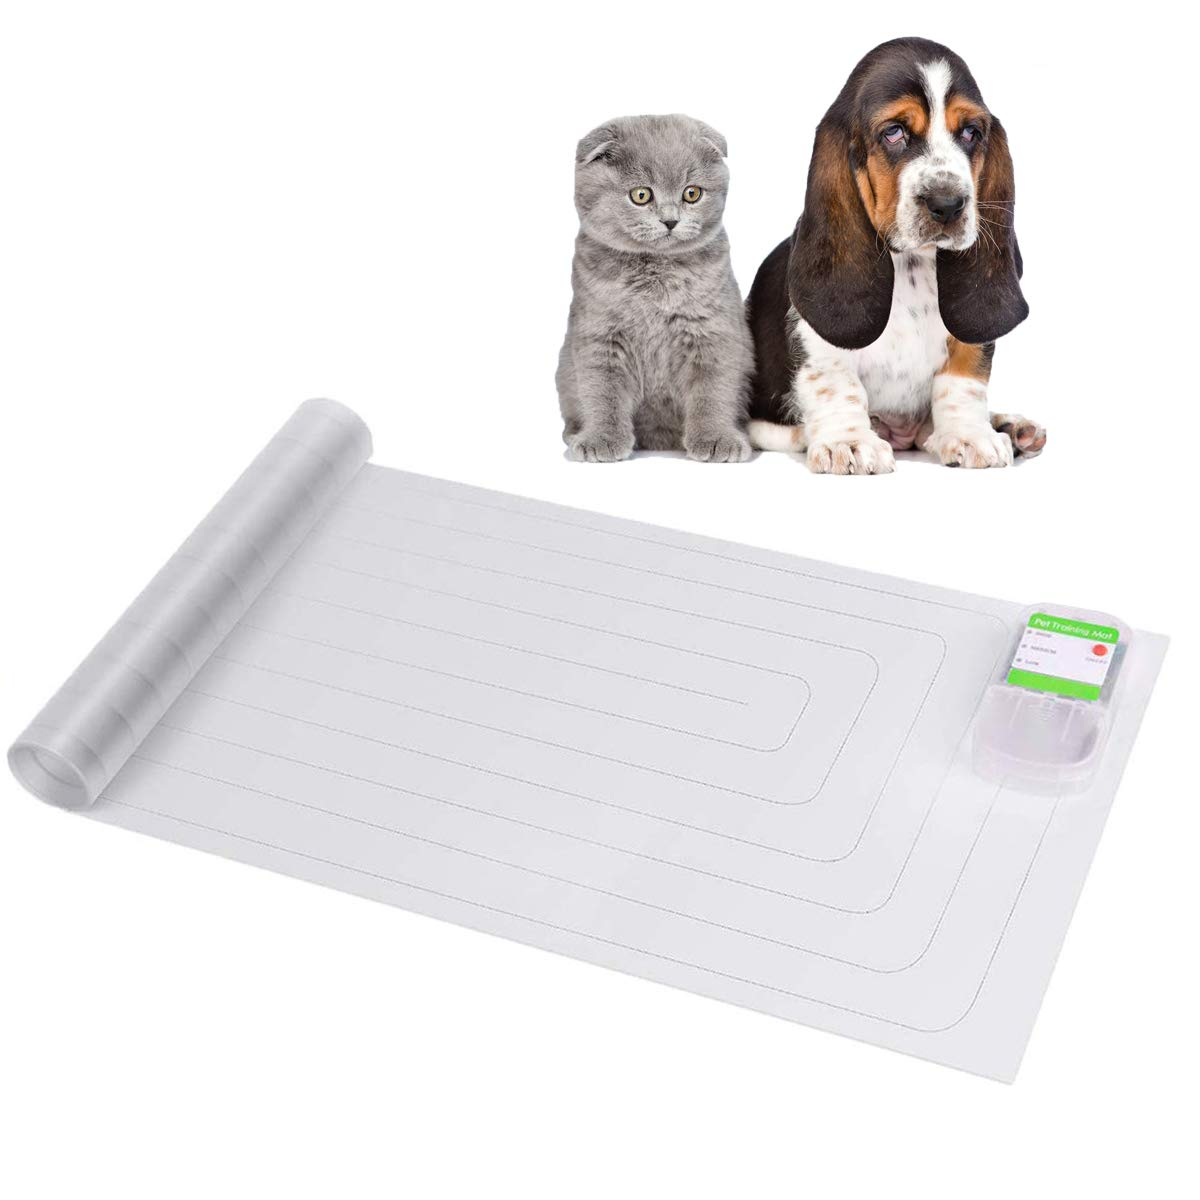 Plenmor Scat Cat Mat, Electronic Indoor Pet Training Mat for Dog Cat - Keep Dogs Pets Safely Off Furniture 12x60 Inch by Plenmor